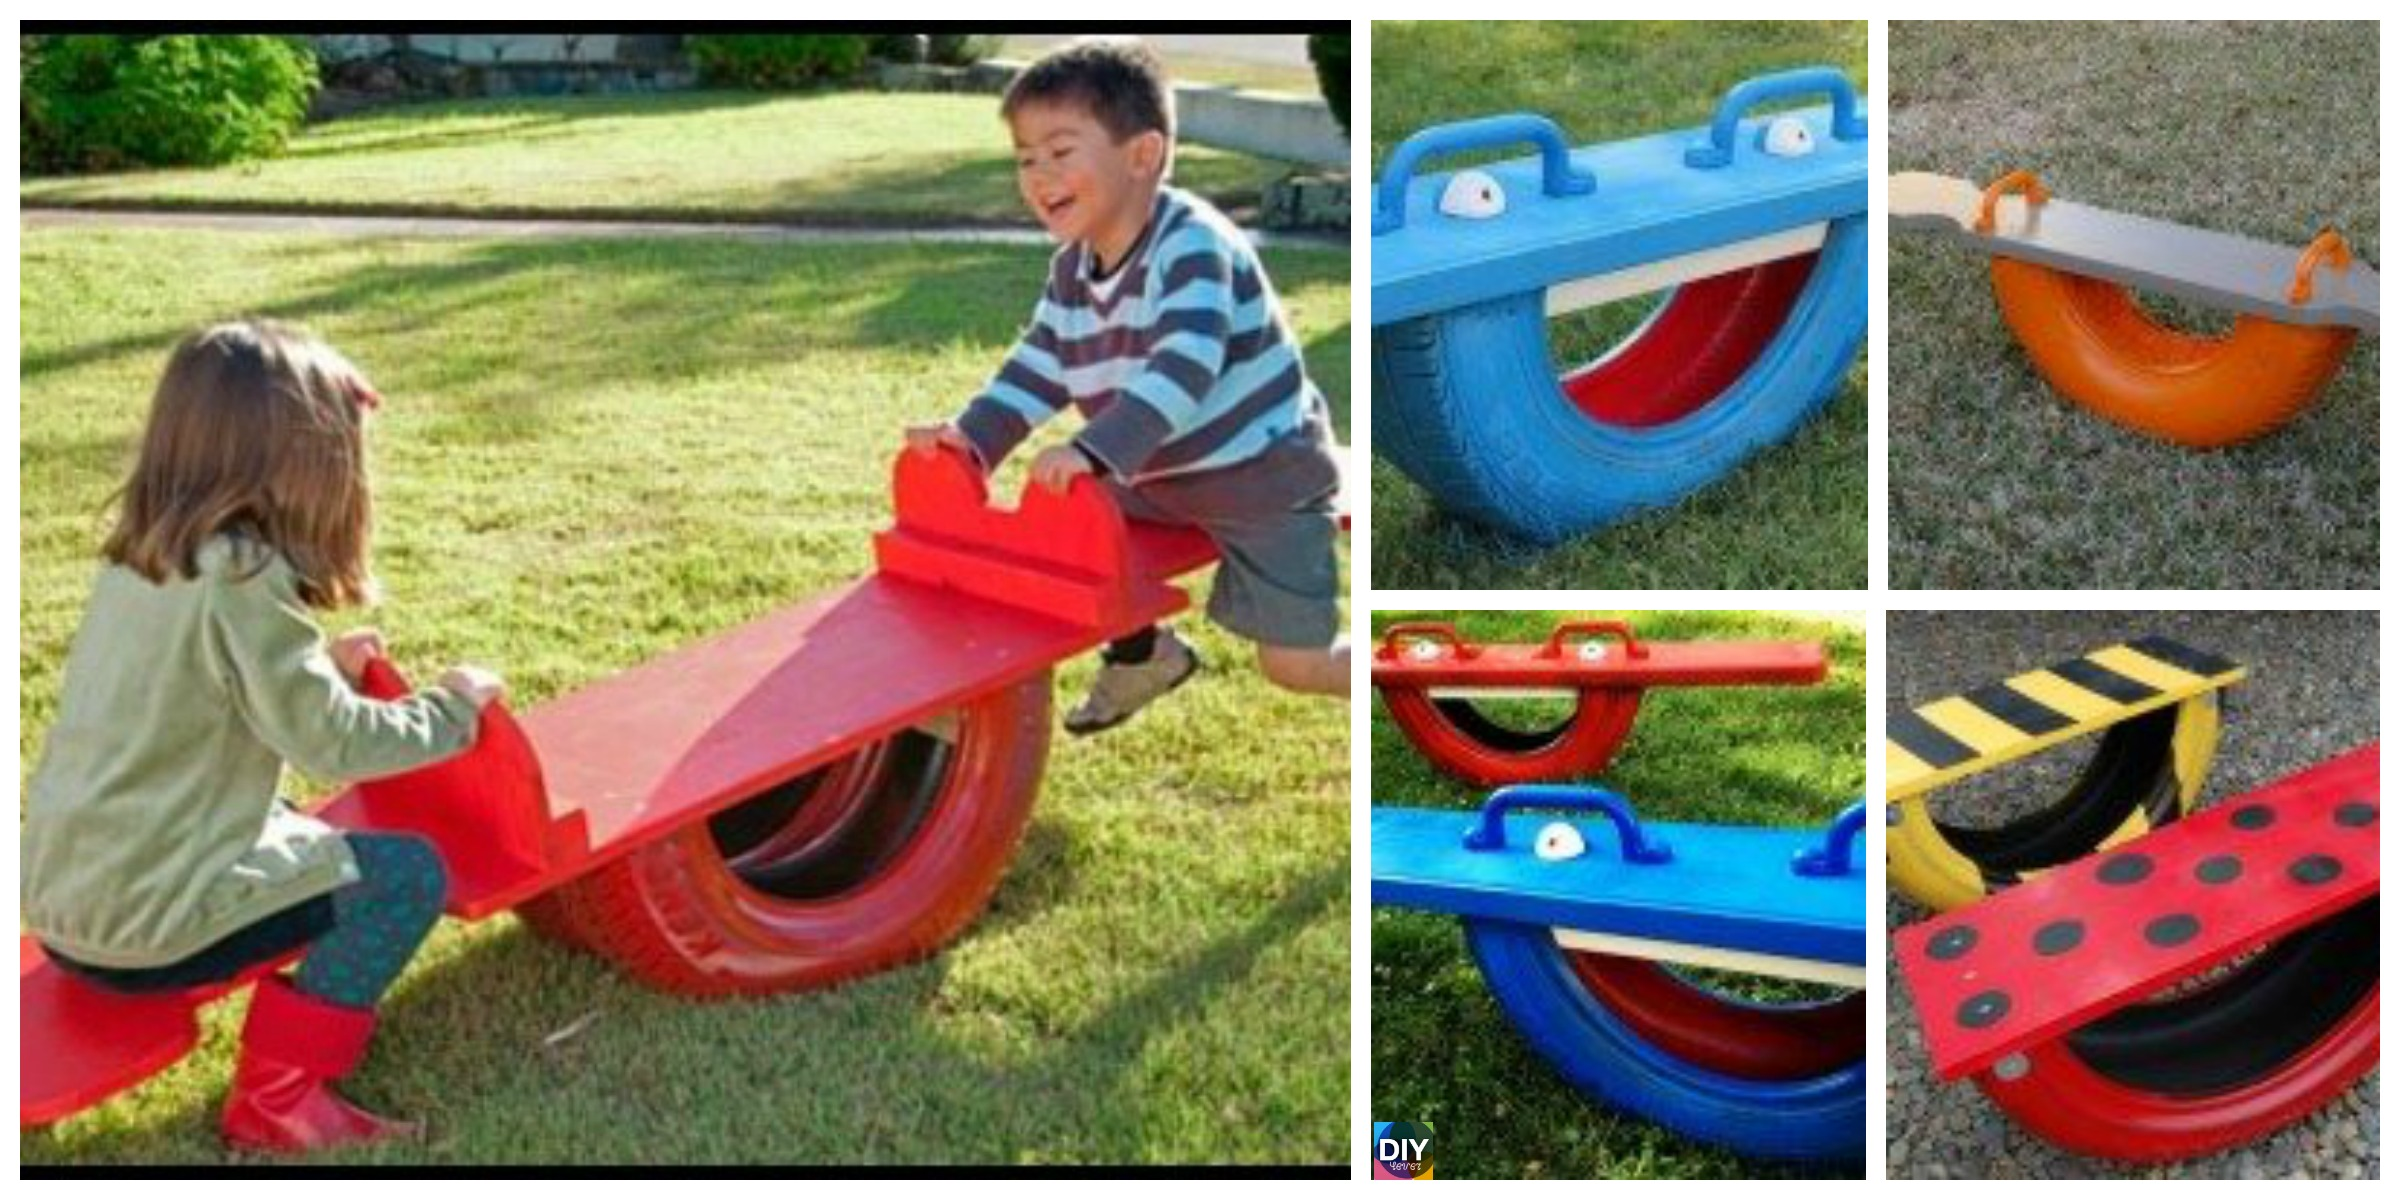 DIY Seesaw from Repurposed Old Tire